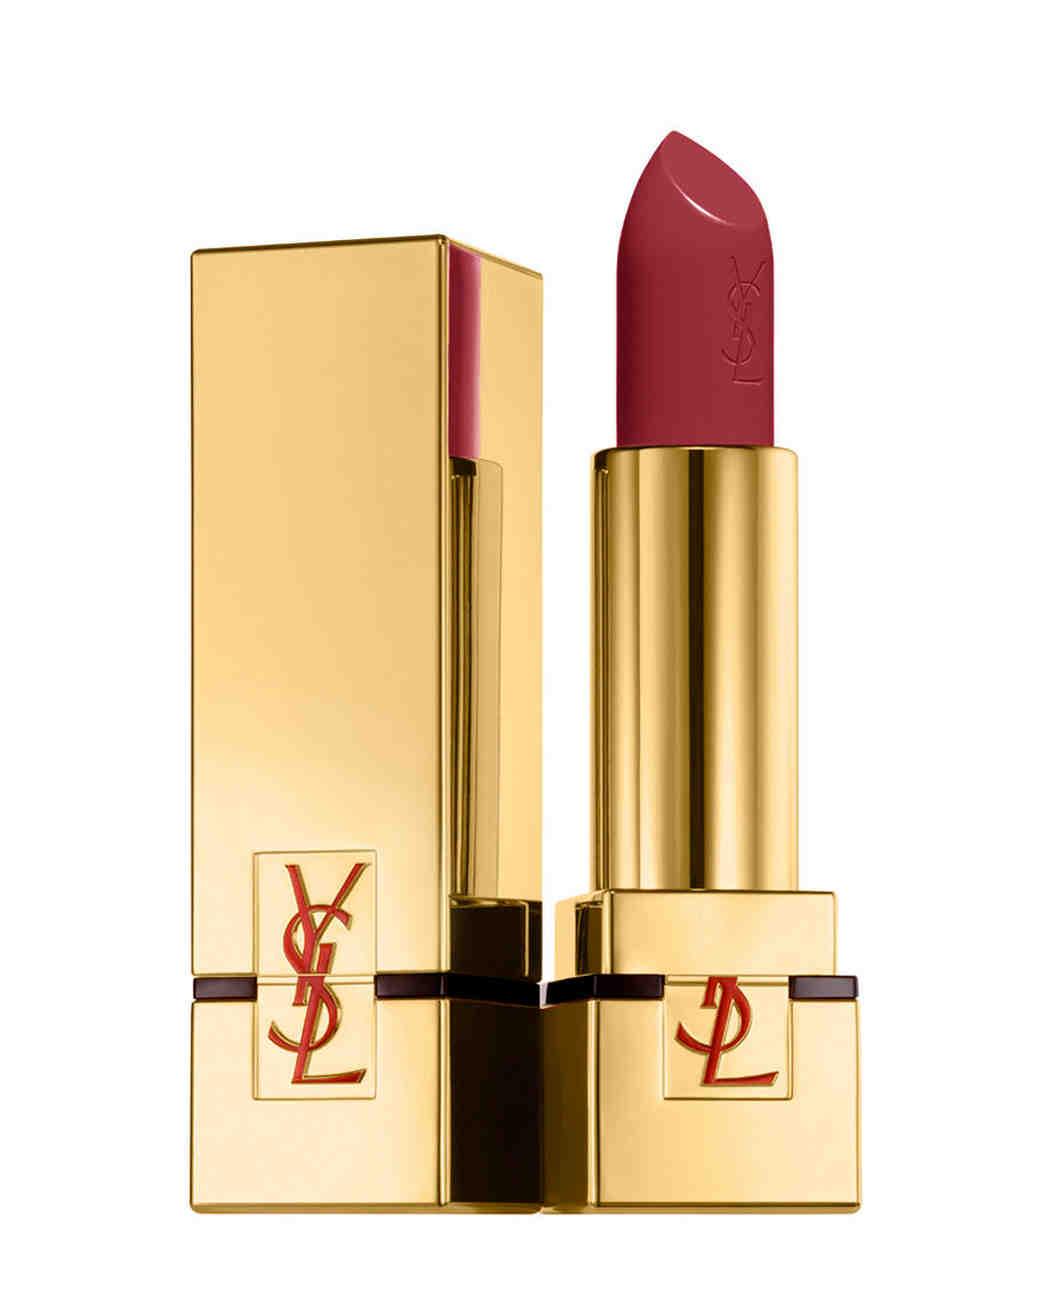 sarah-potempa-beauty-picks-ysl-rouge-pur-couture-lipstick-0414.jpg